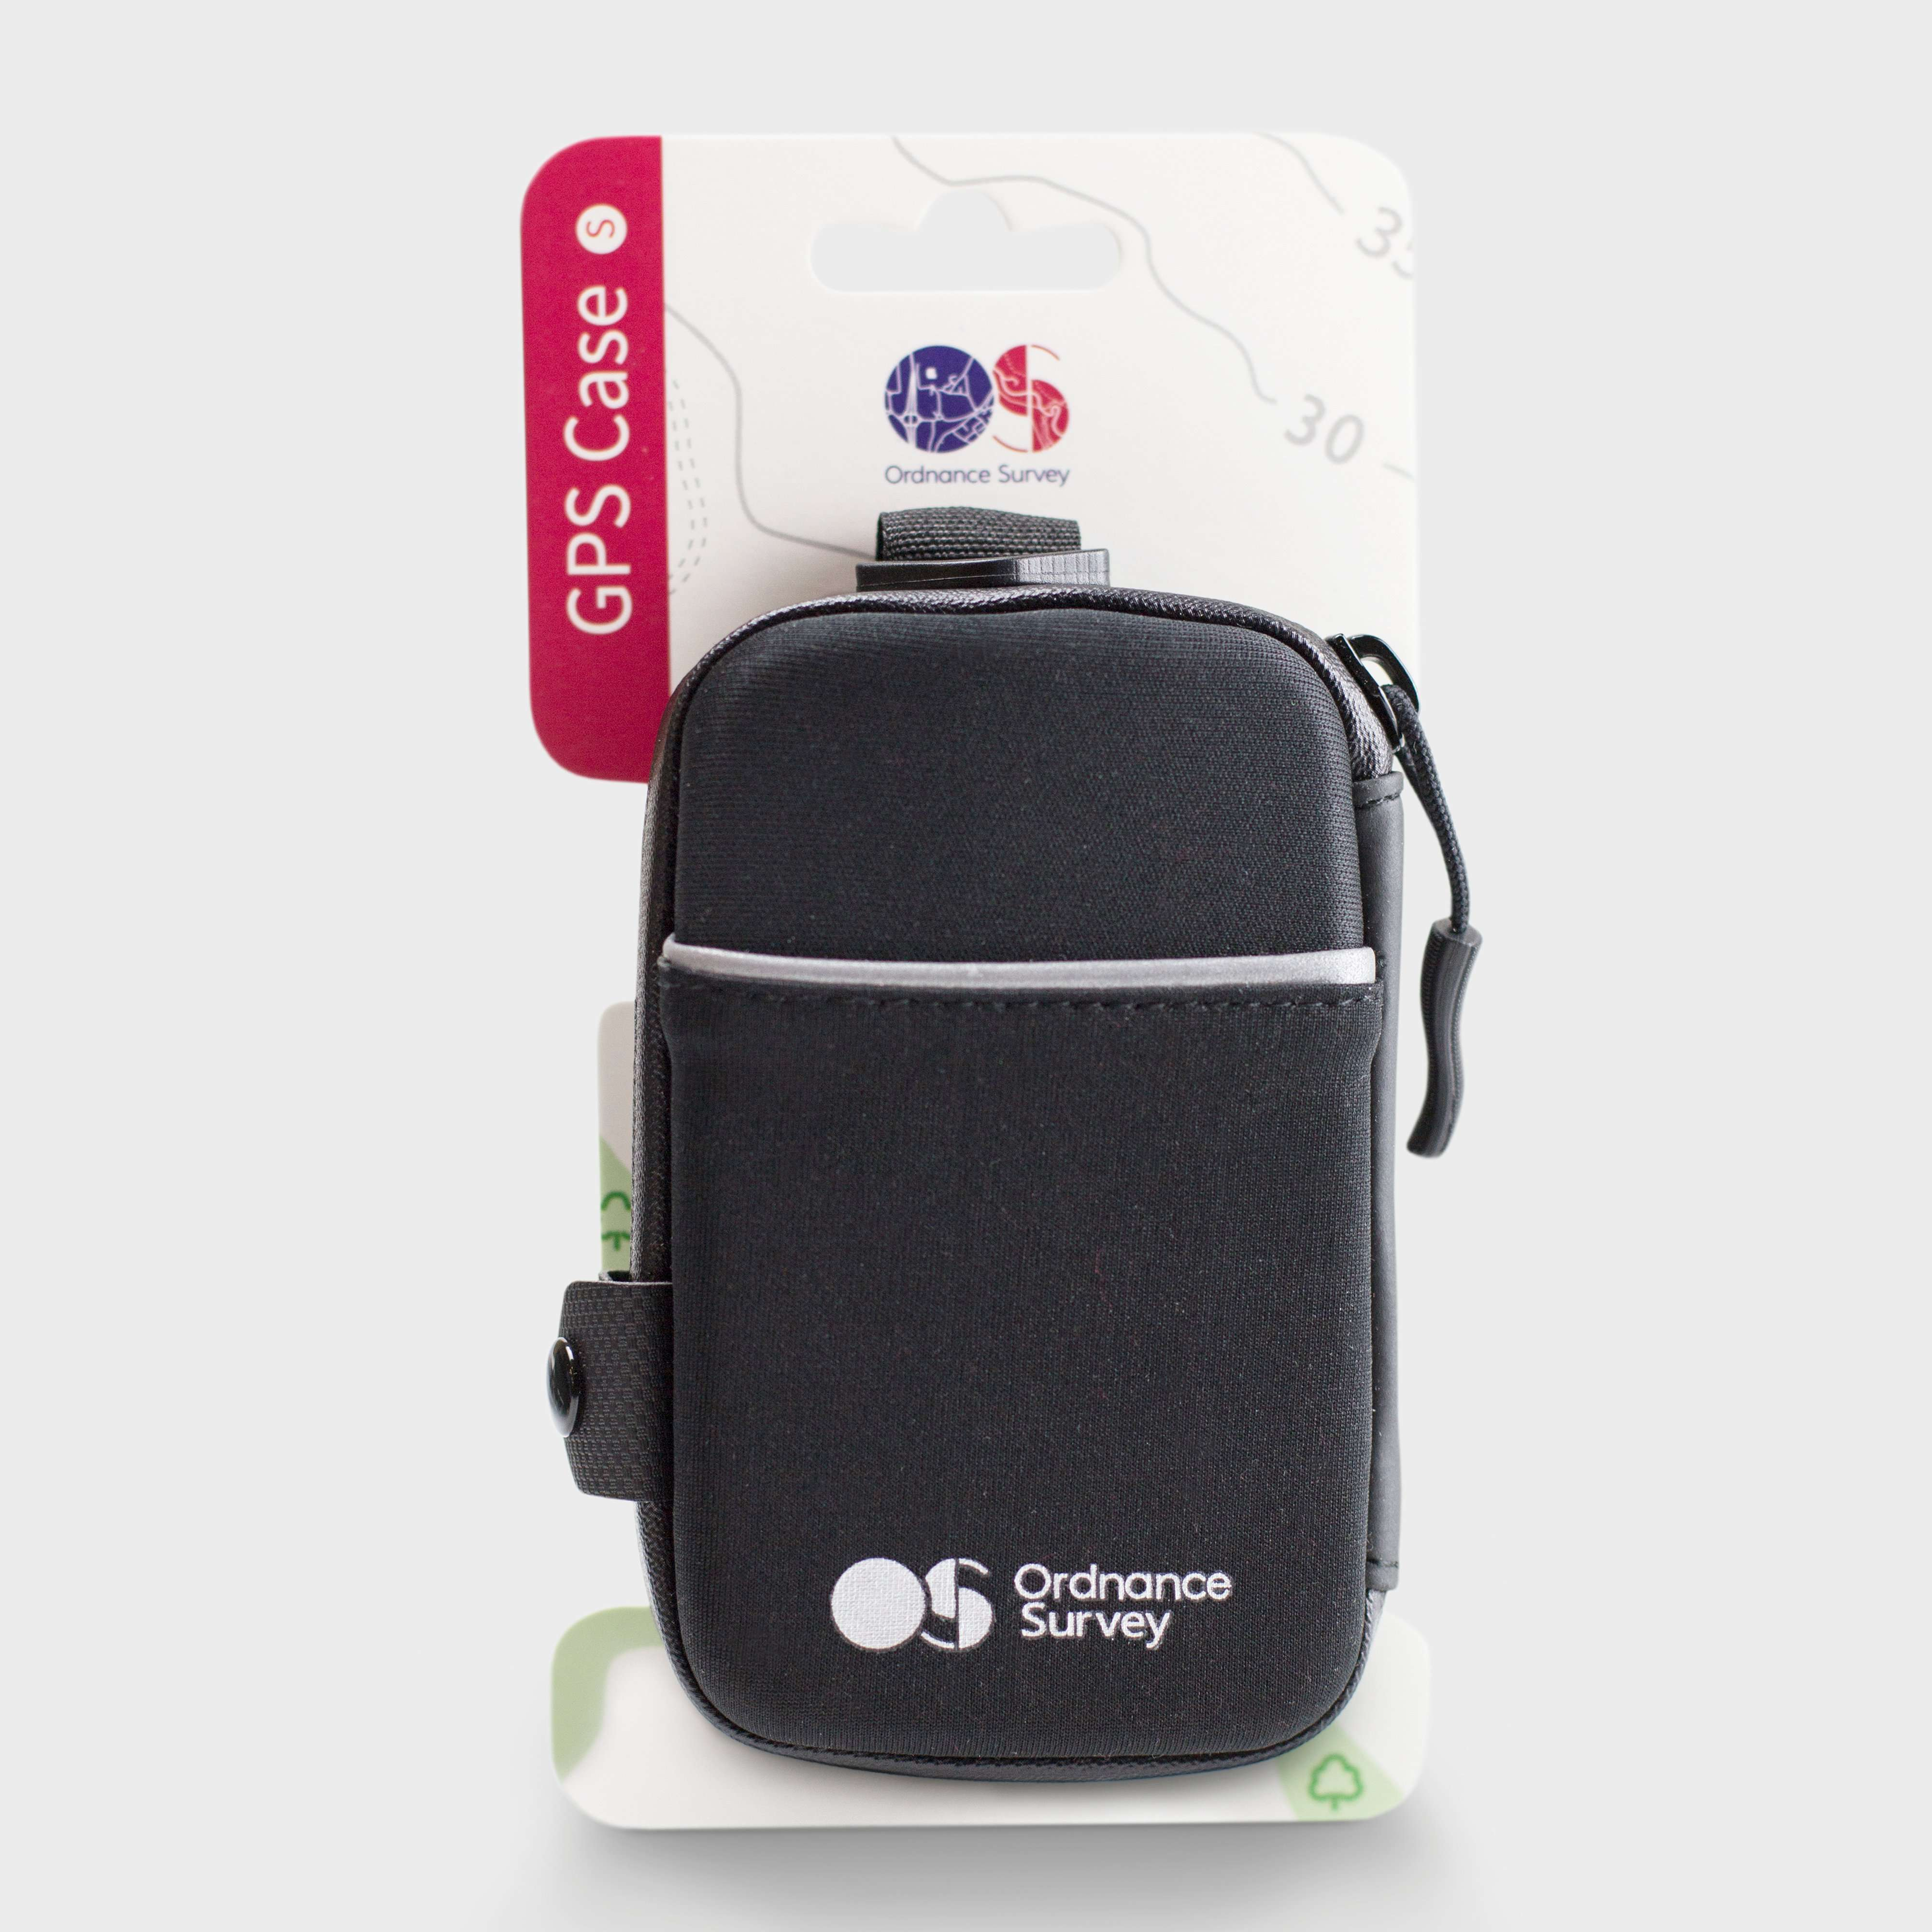 ORDNANCE SURVEY GPS Case (Small)